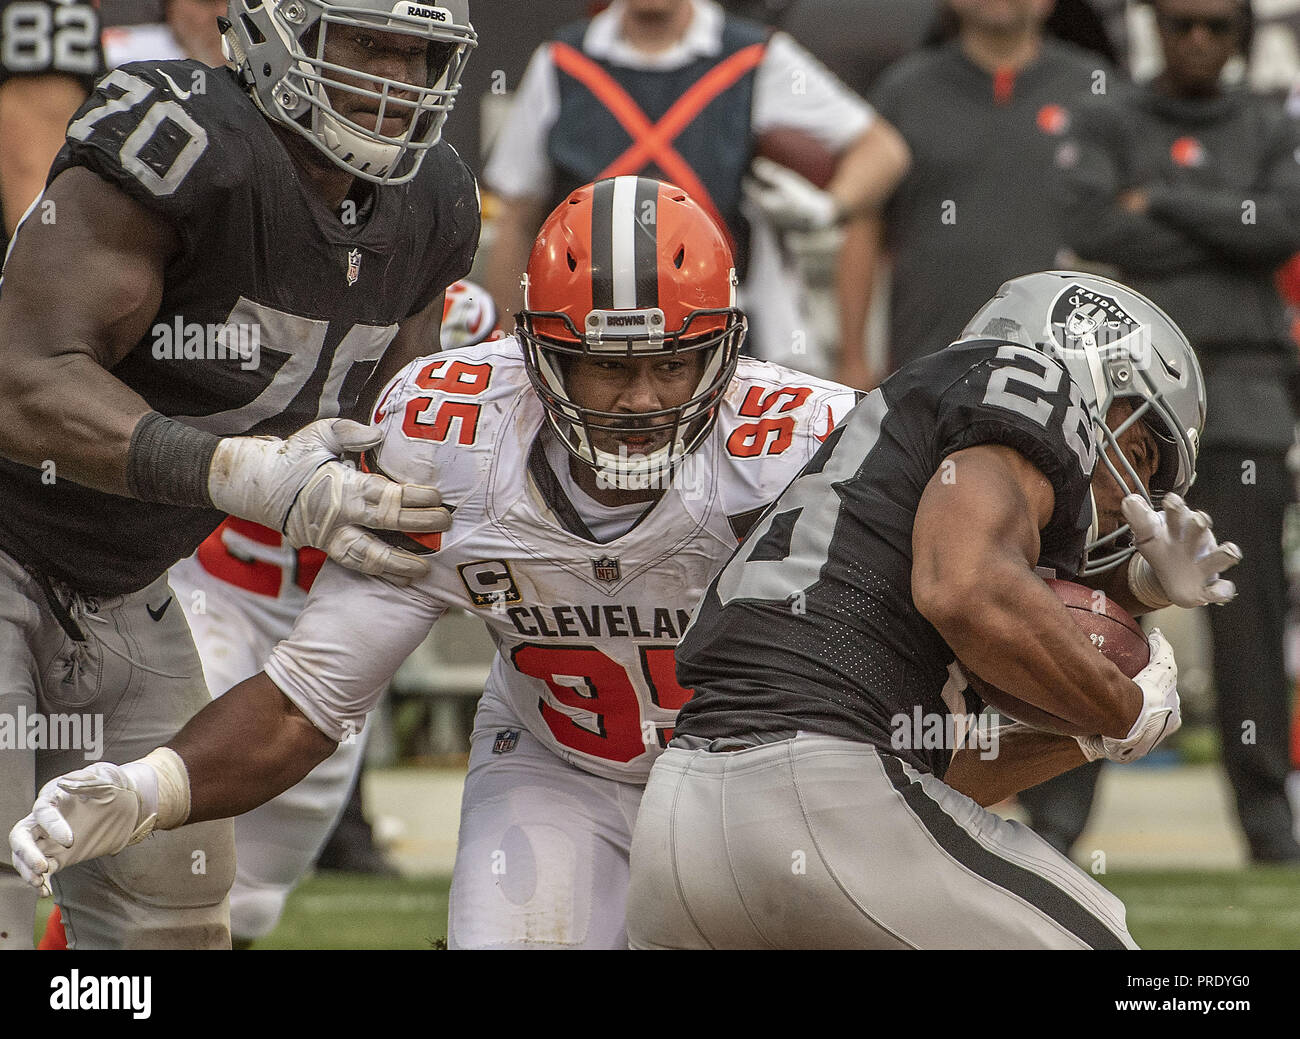 Oakland, California, USA. 30th Sep, 2018. Cleveland Browns defensive end Myles